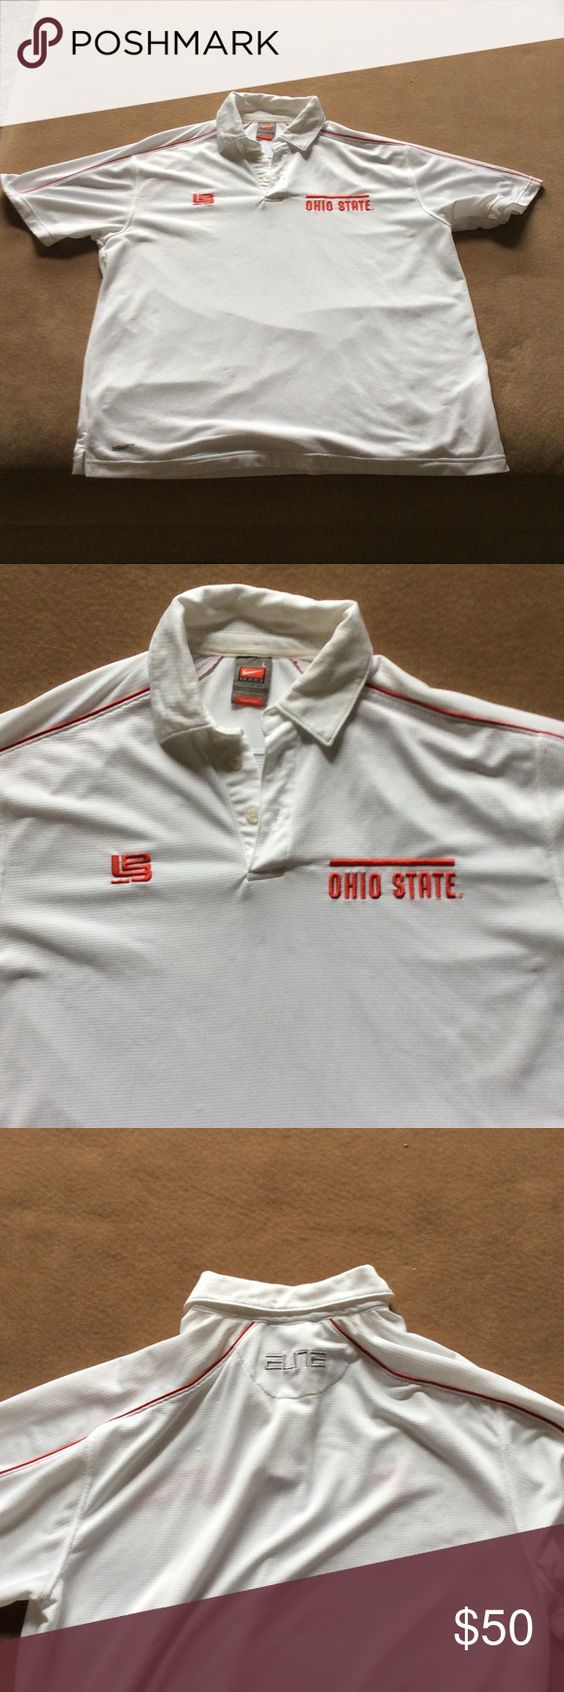 Nike fit dry Ohio State polo with Lebron Jameslogo Nike Fit Dry OSU with Lebron James